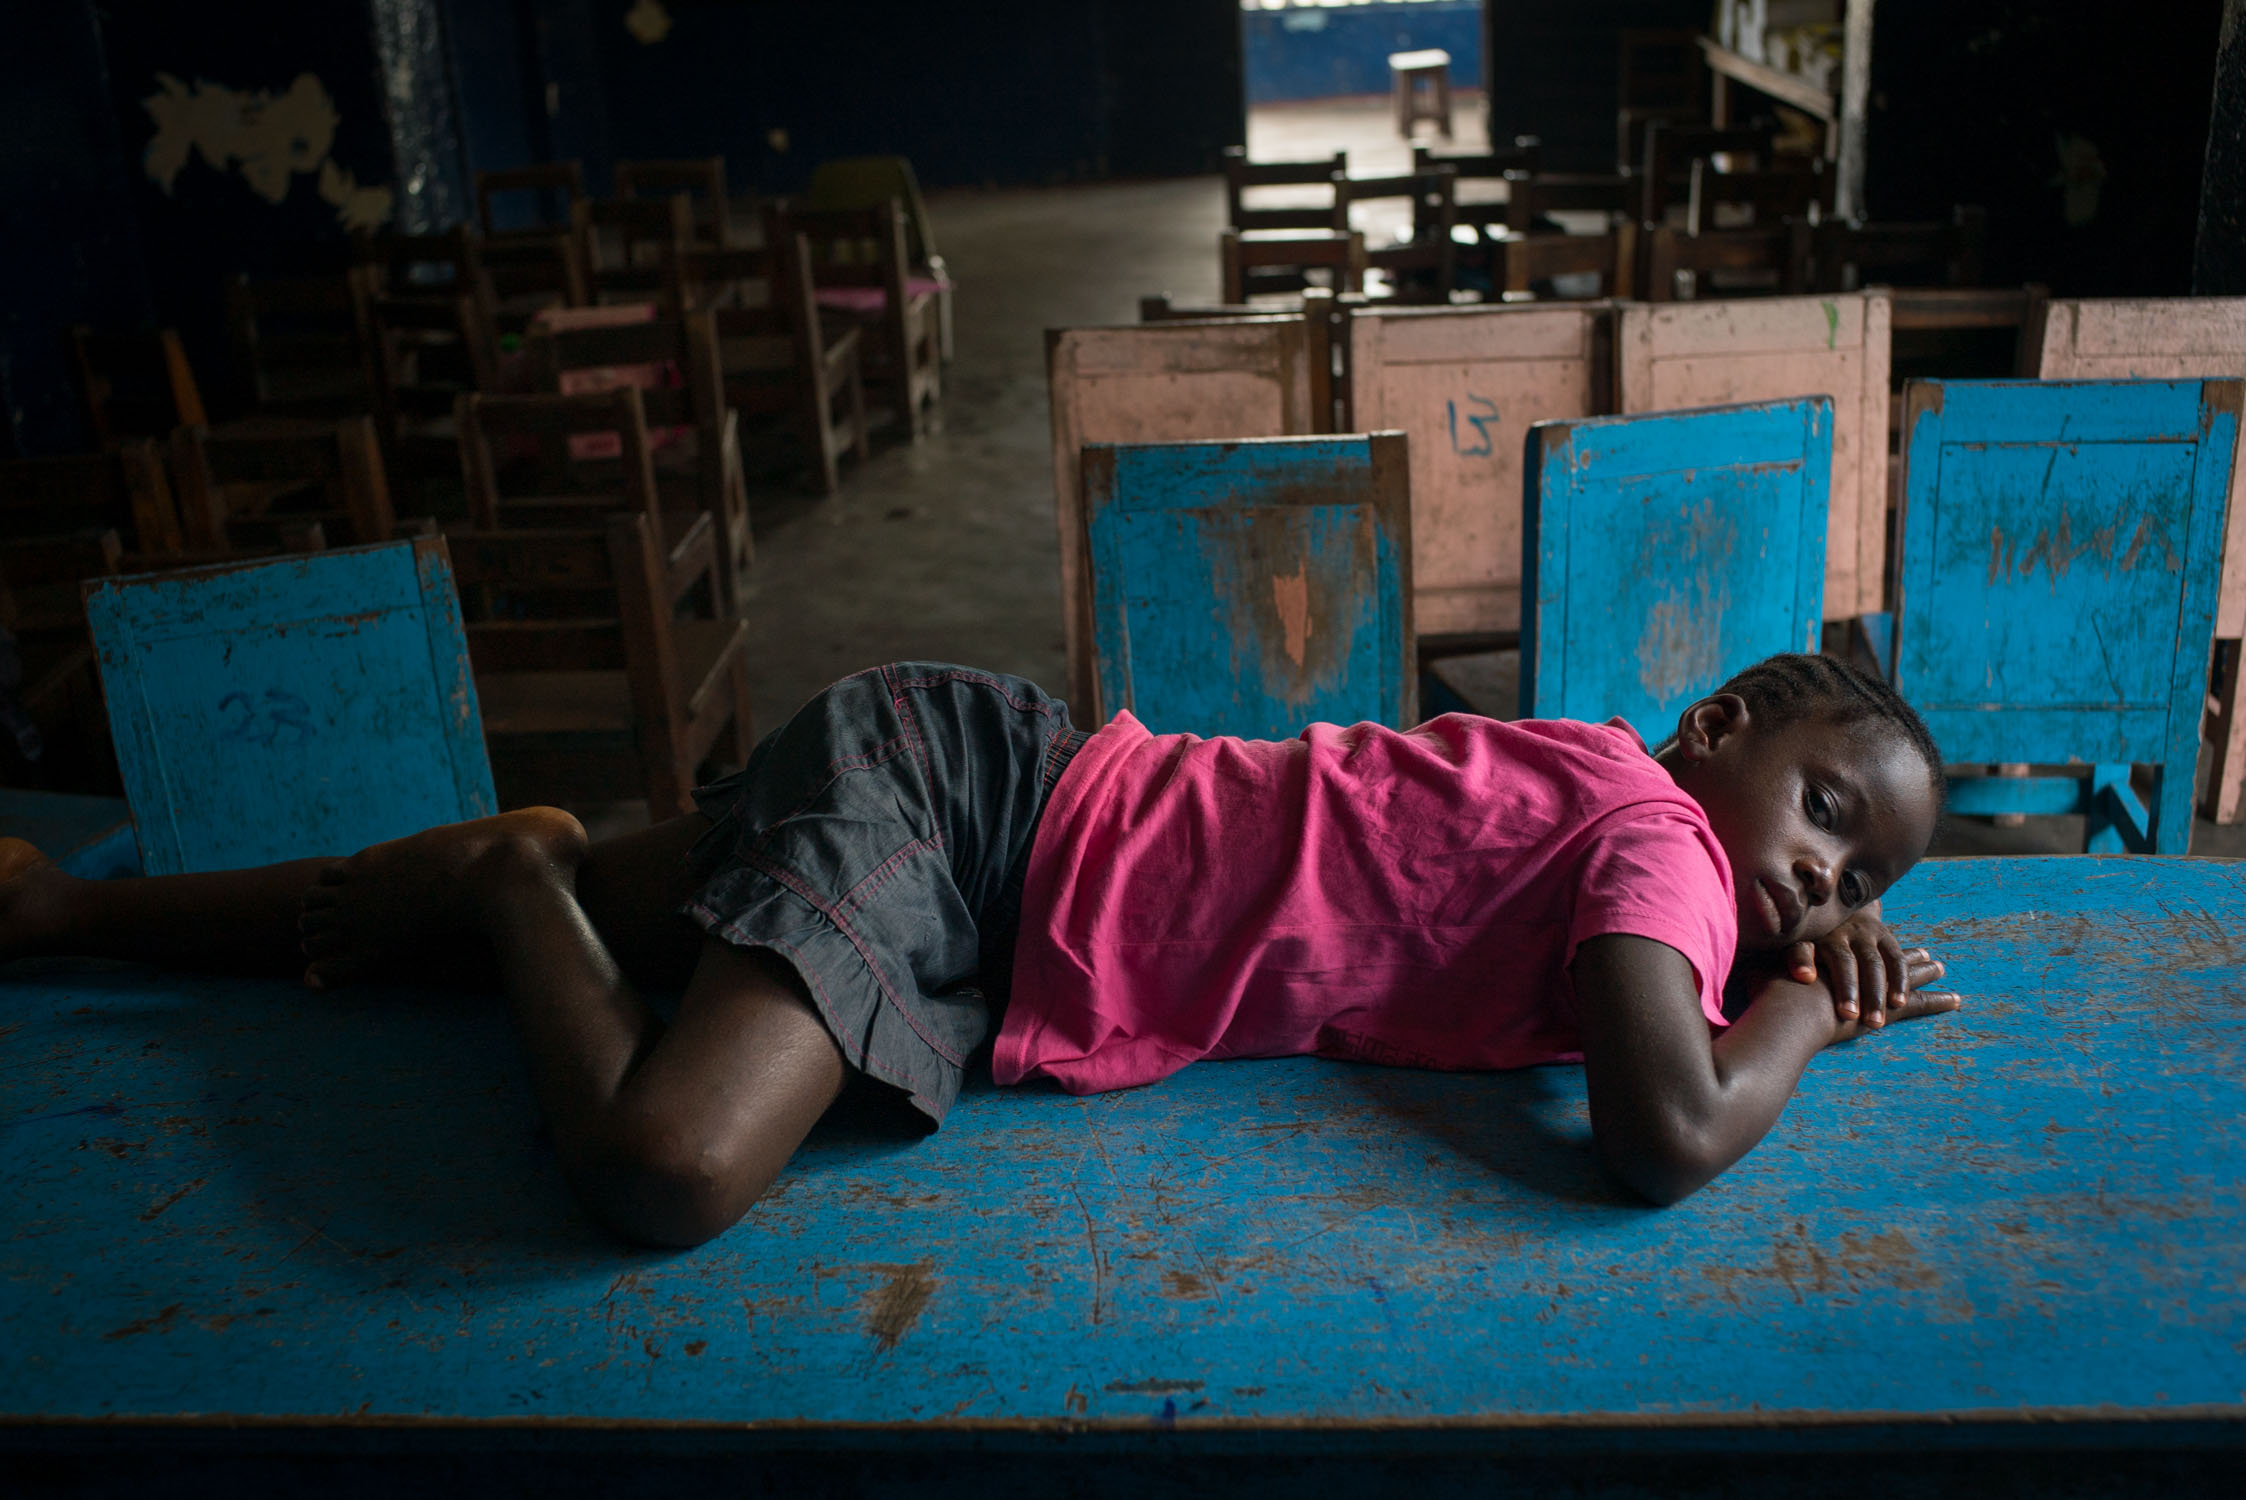 A youg girl suffering from malaria lies on a table after the classroom empties out at a Bridge school. One of the challenges to education in the developing world is that children come to school sick, so good schools usually supply medical referrals or care. September 23, 2016. Monrovia, Liberia.